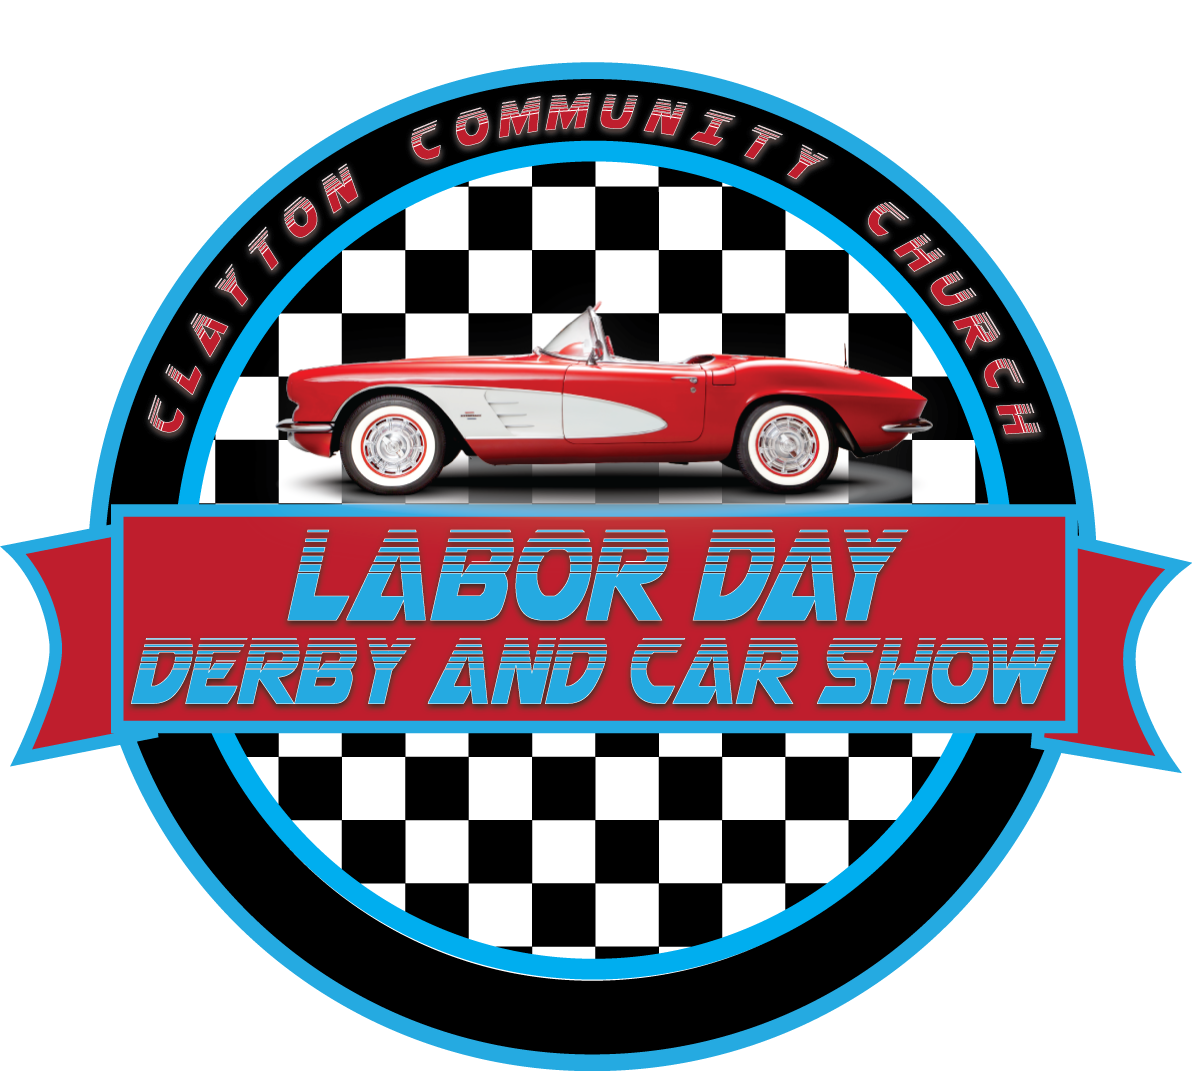 Labor day derby2018logo